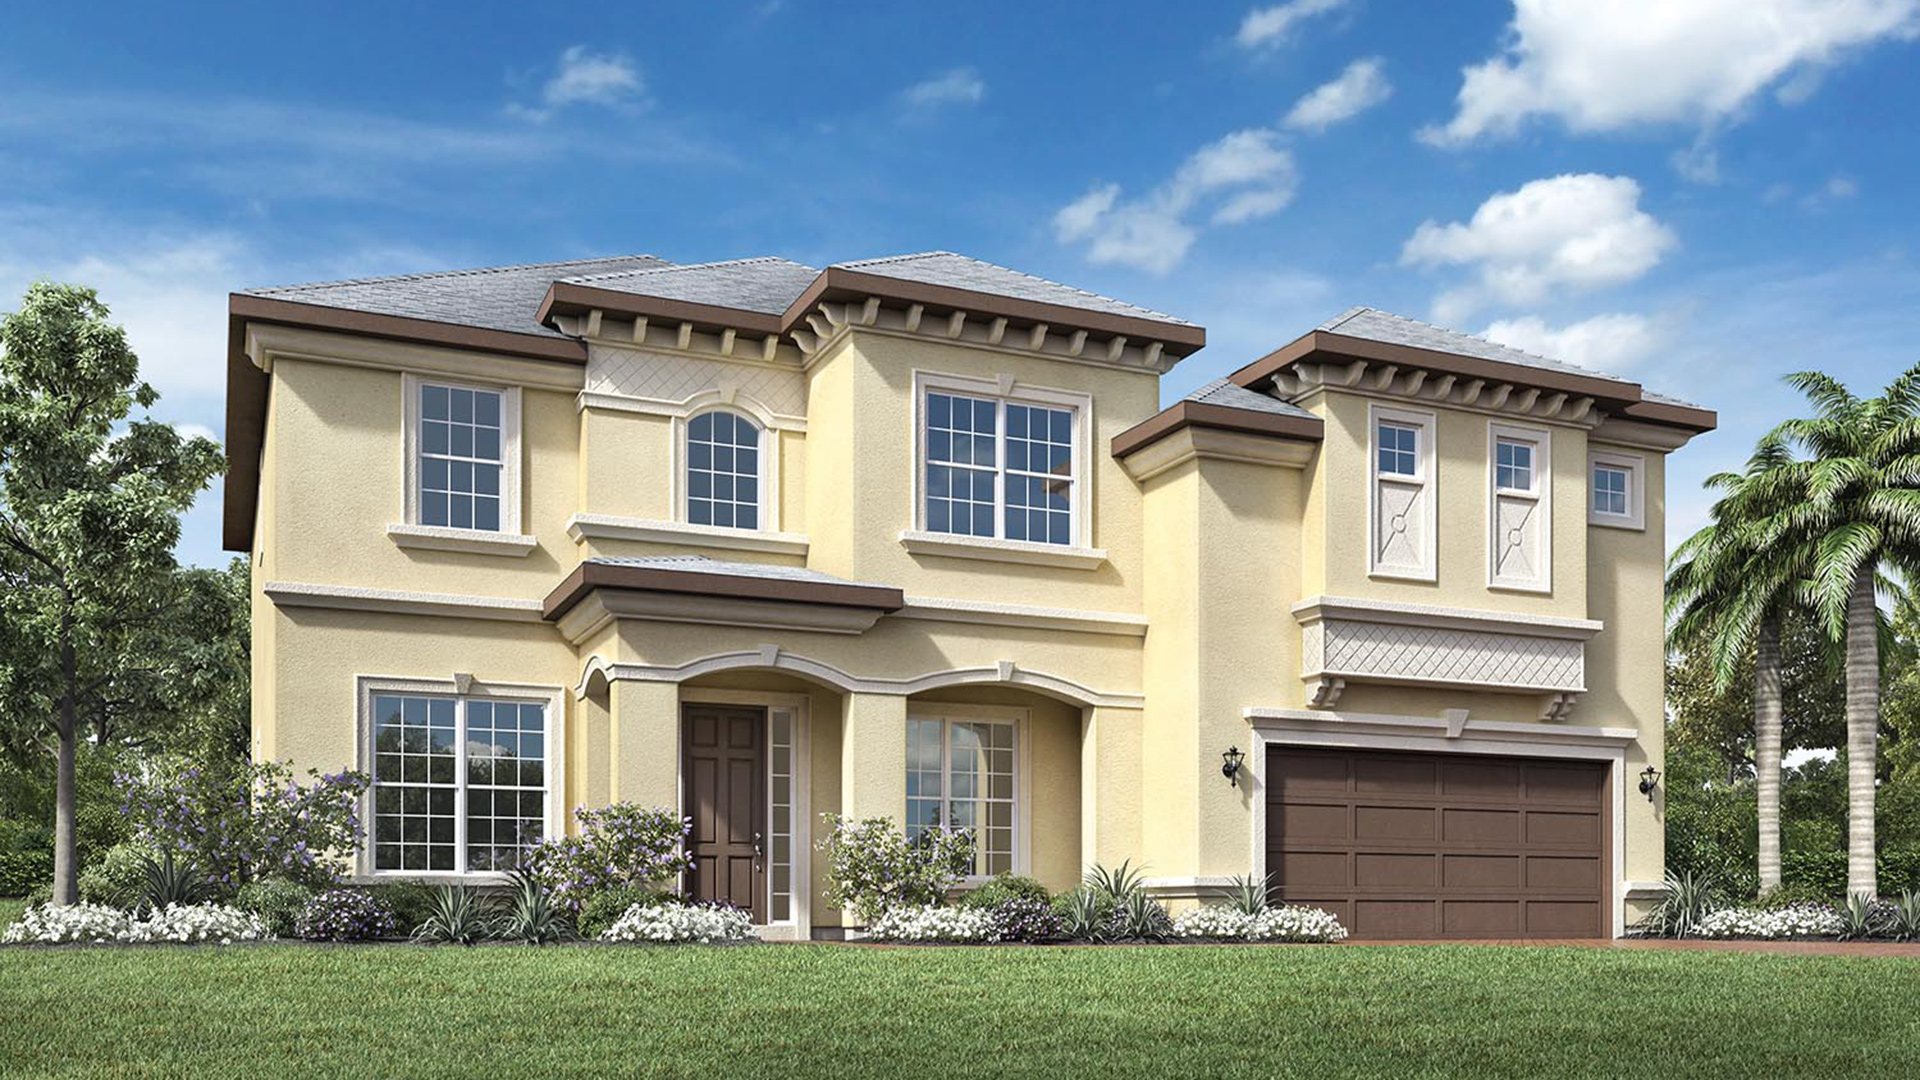 Coastal oaks at nocatee ambassador collection the for The edgewater house